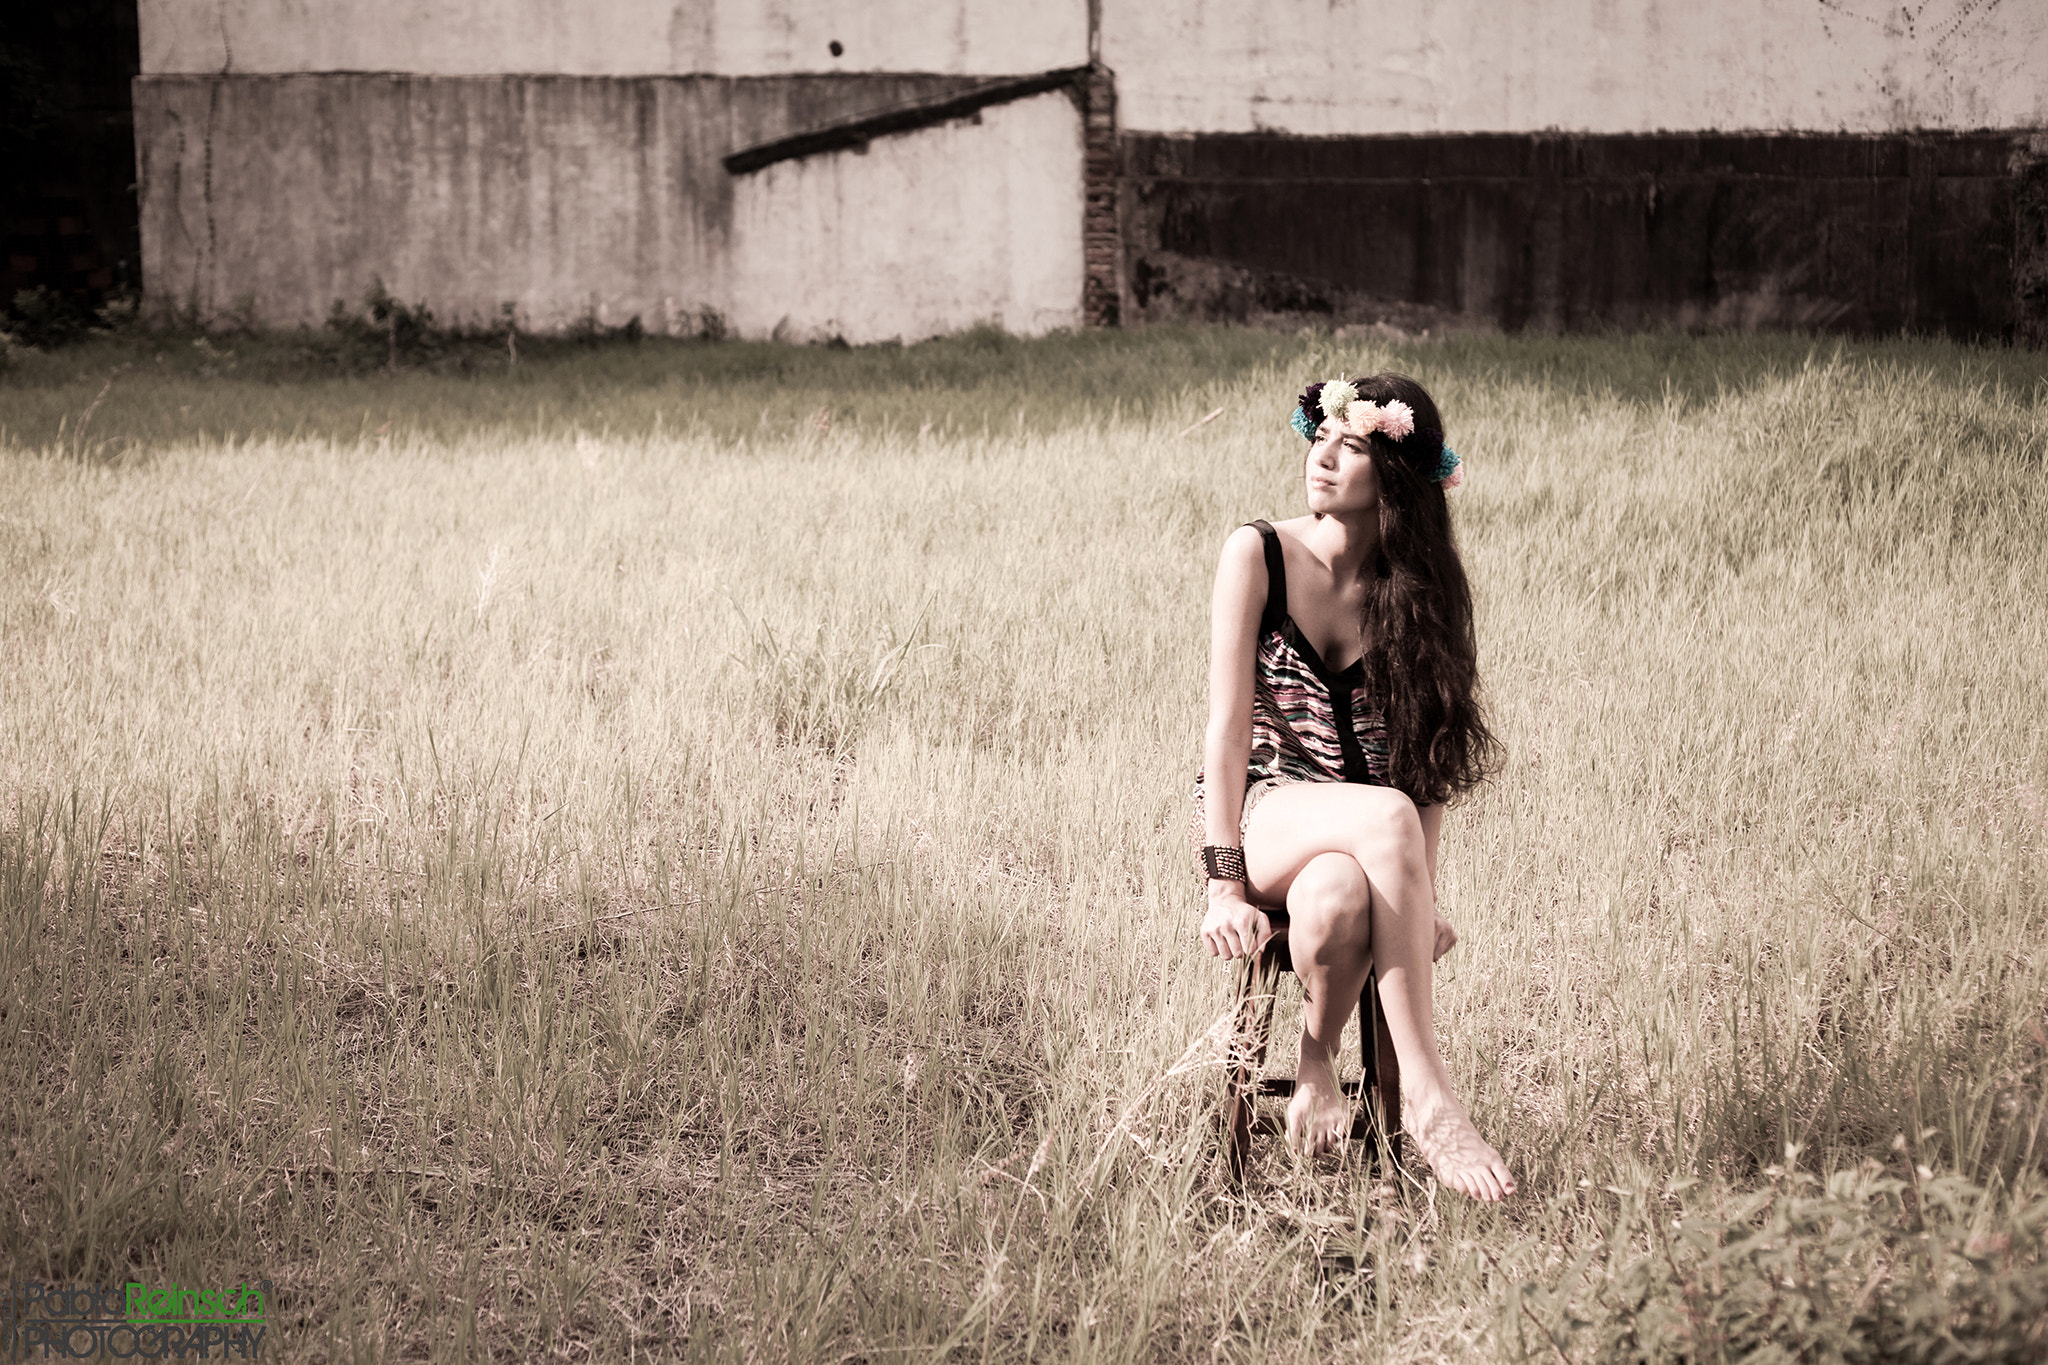 Photograph Cintia in wasteland.- by Pablo Reinsch on 500px